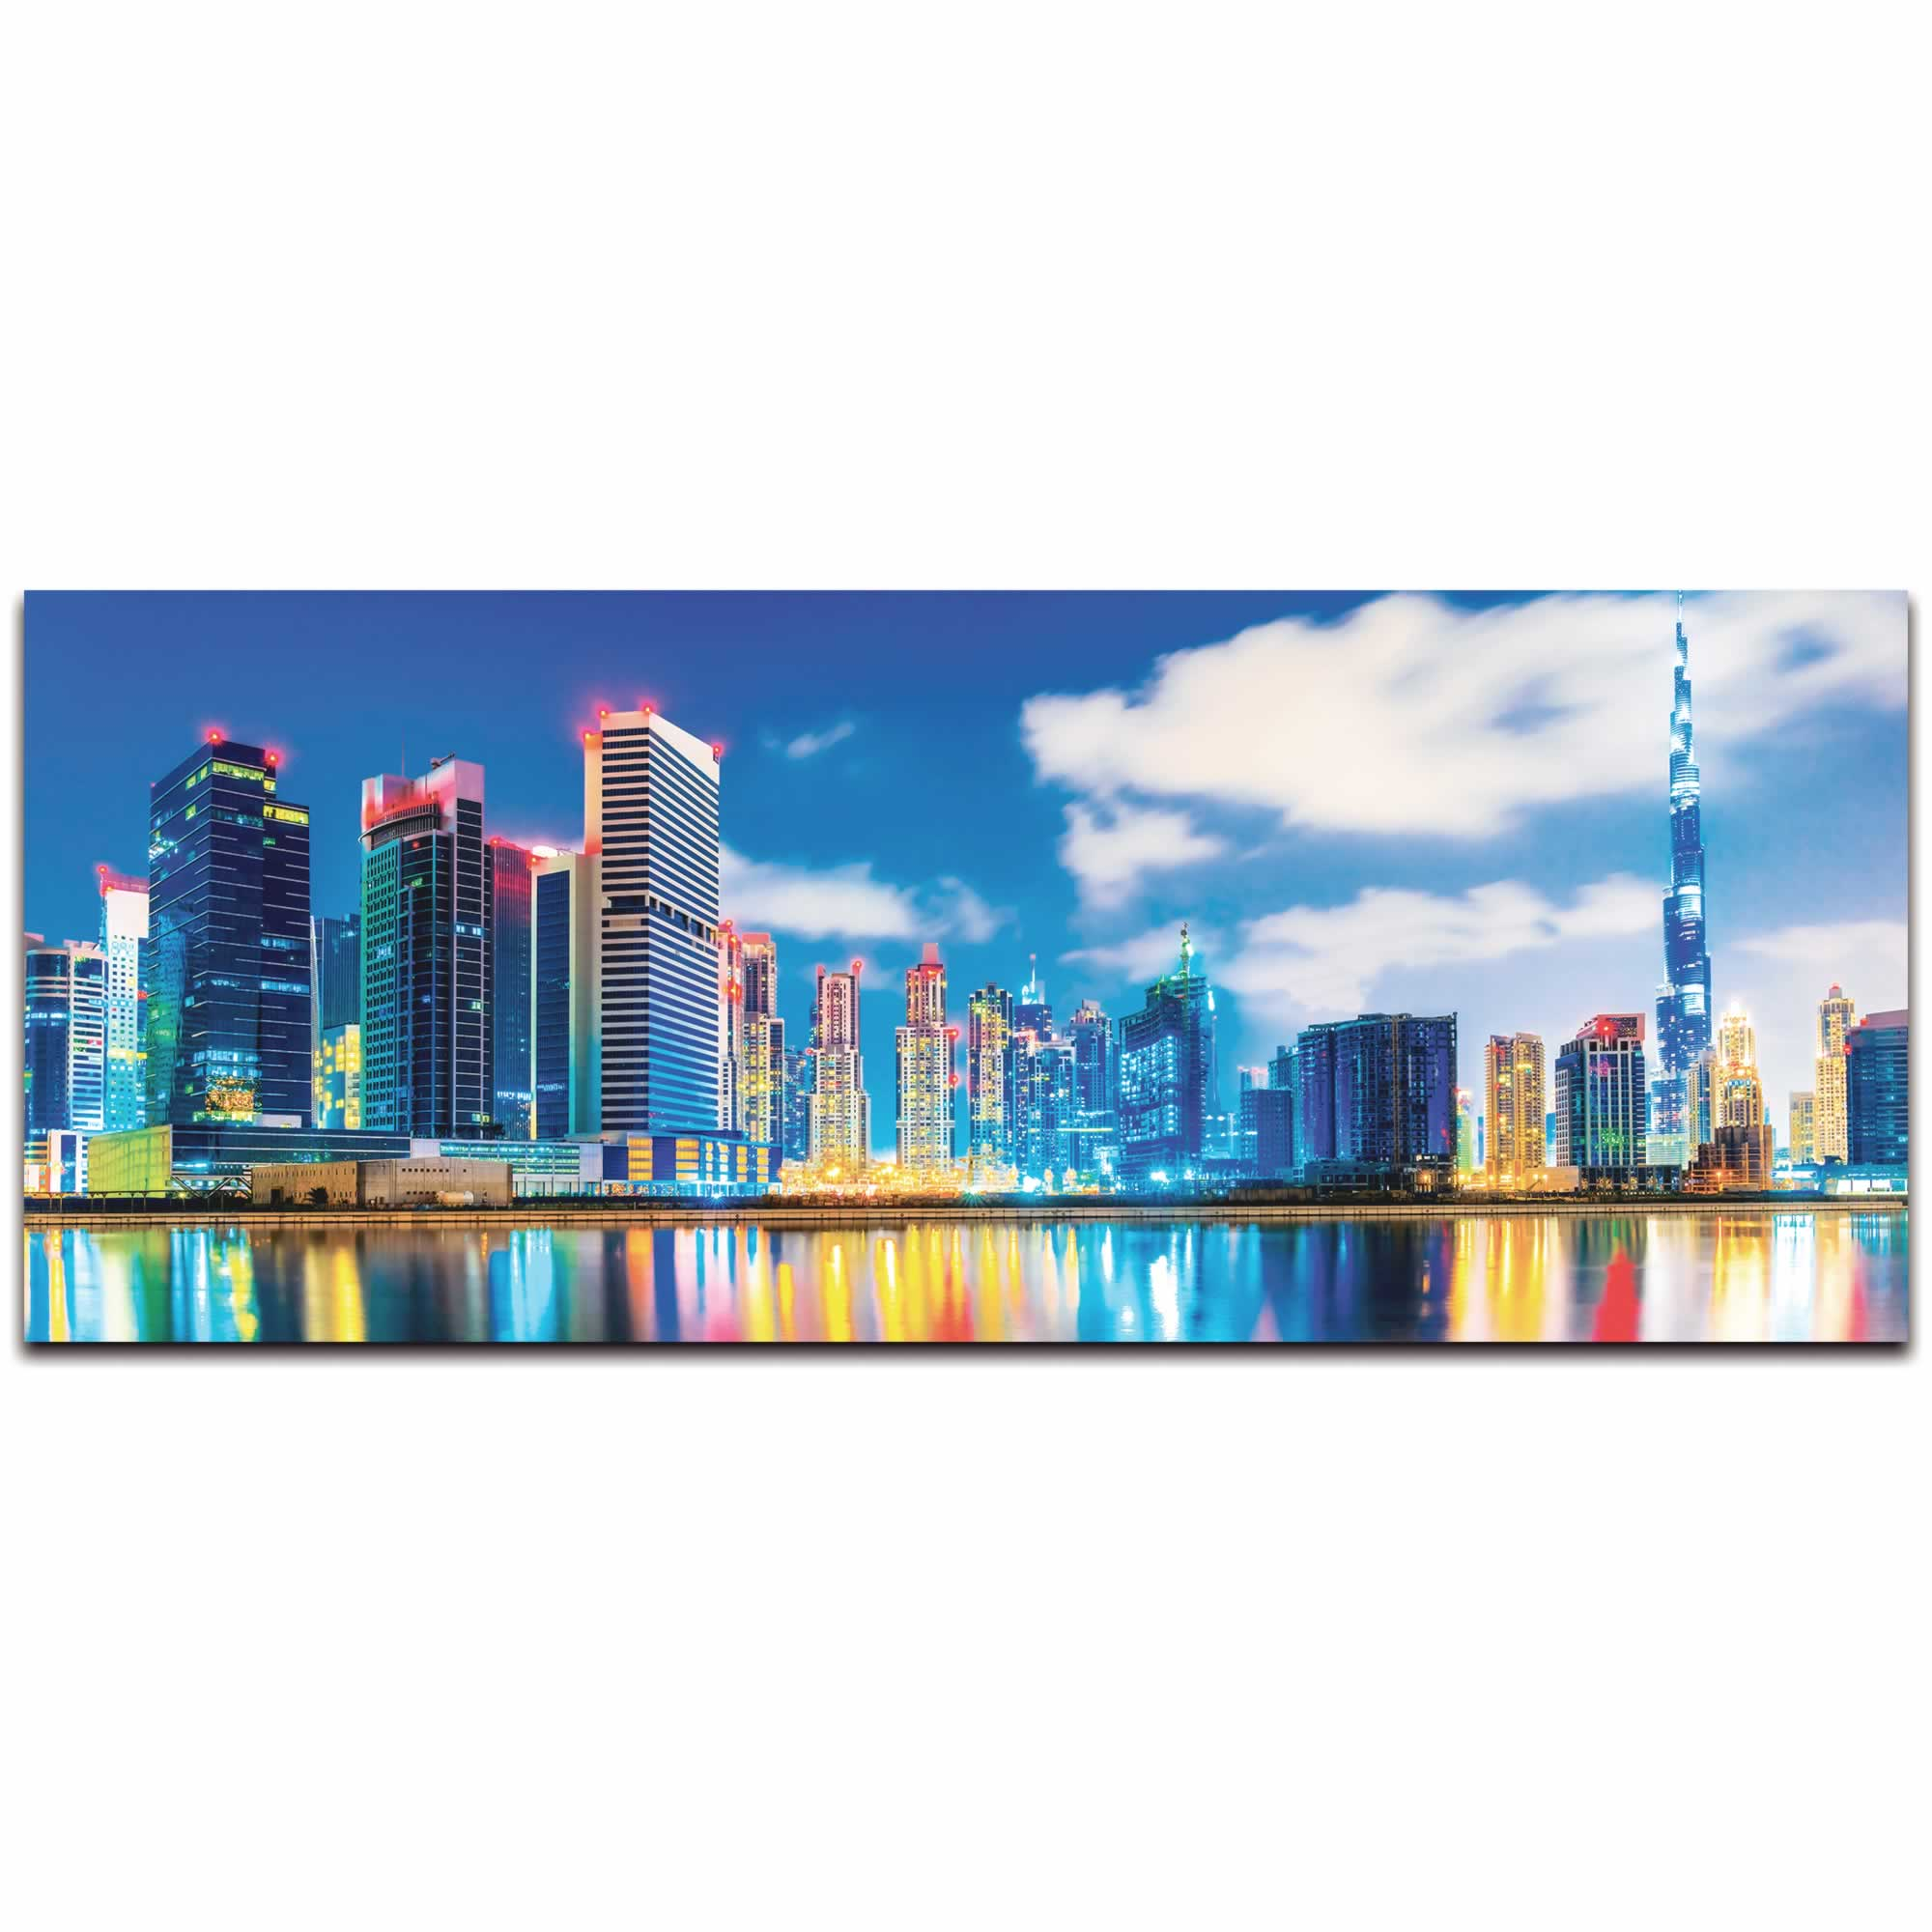 Dubai City Skyline At Night - Urban Modern Art, Designer Home Decor, Cityscape Wall Artwork, Trendy Contemporary Art - Alternate View 2